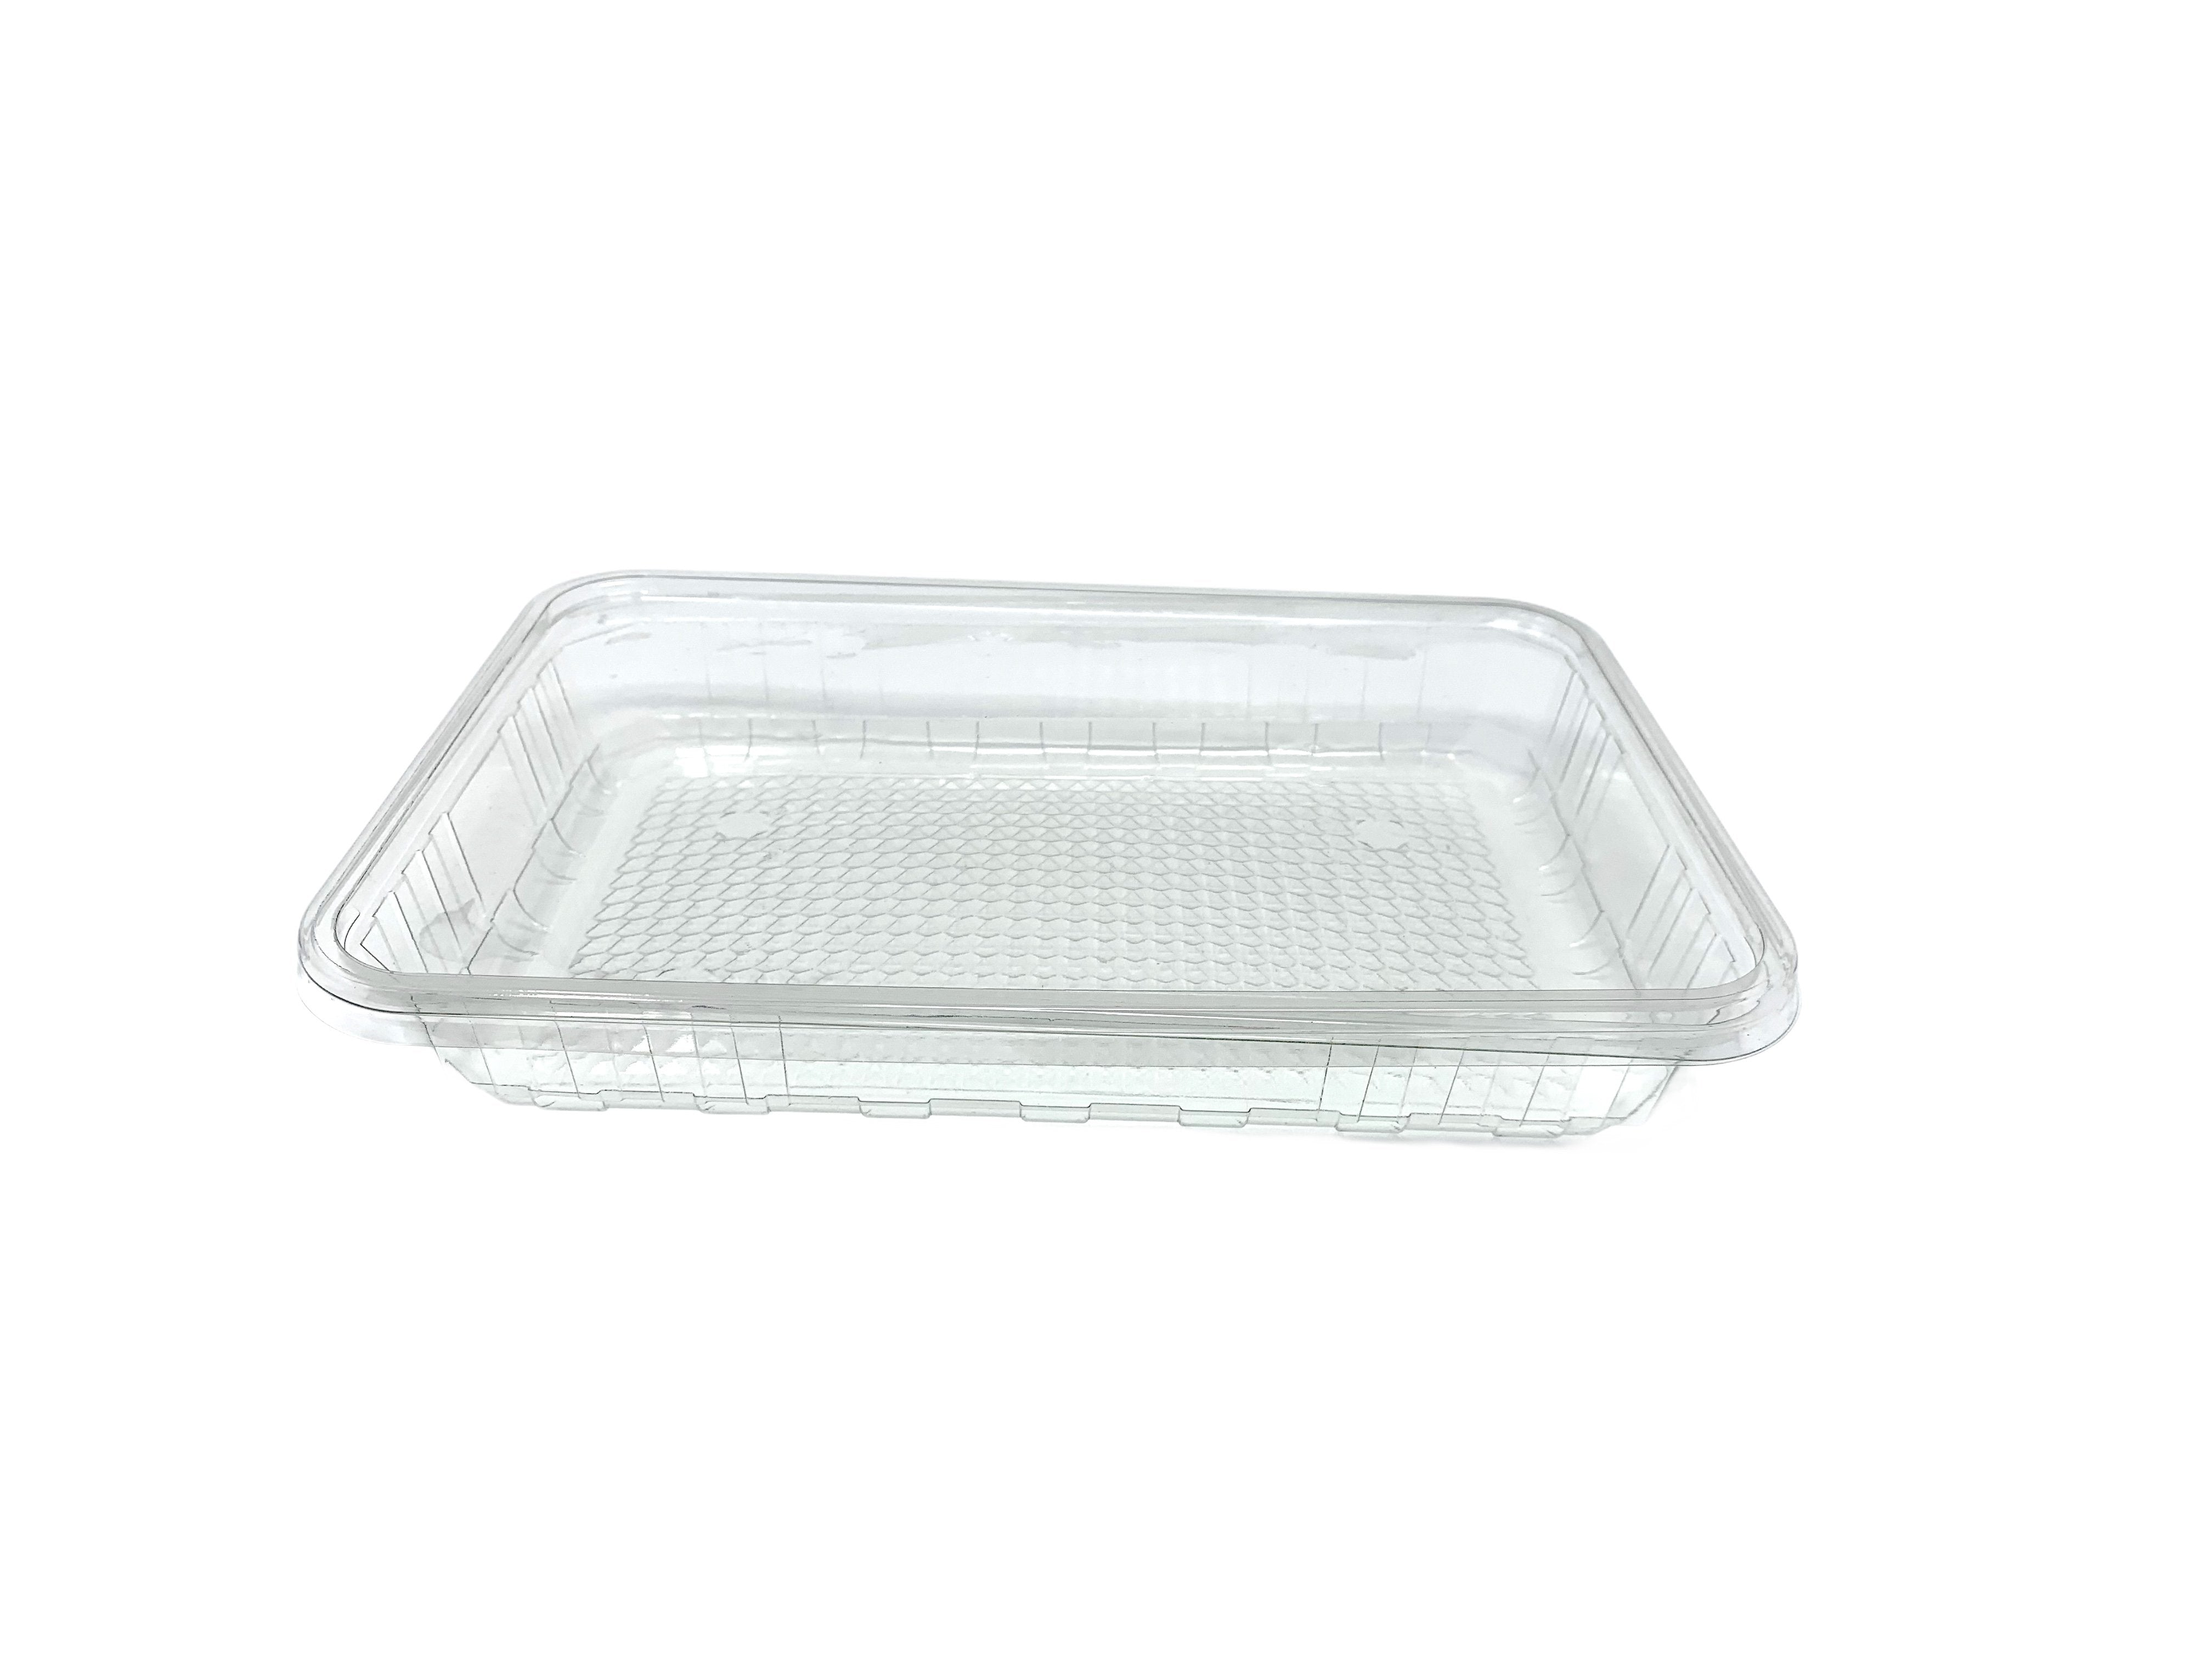 270x180x40 Bakery Container Bases & Lids - Gafbros